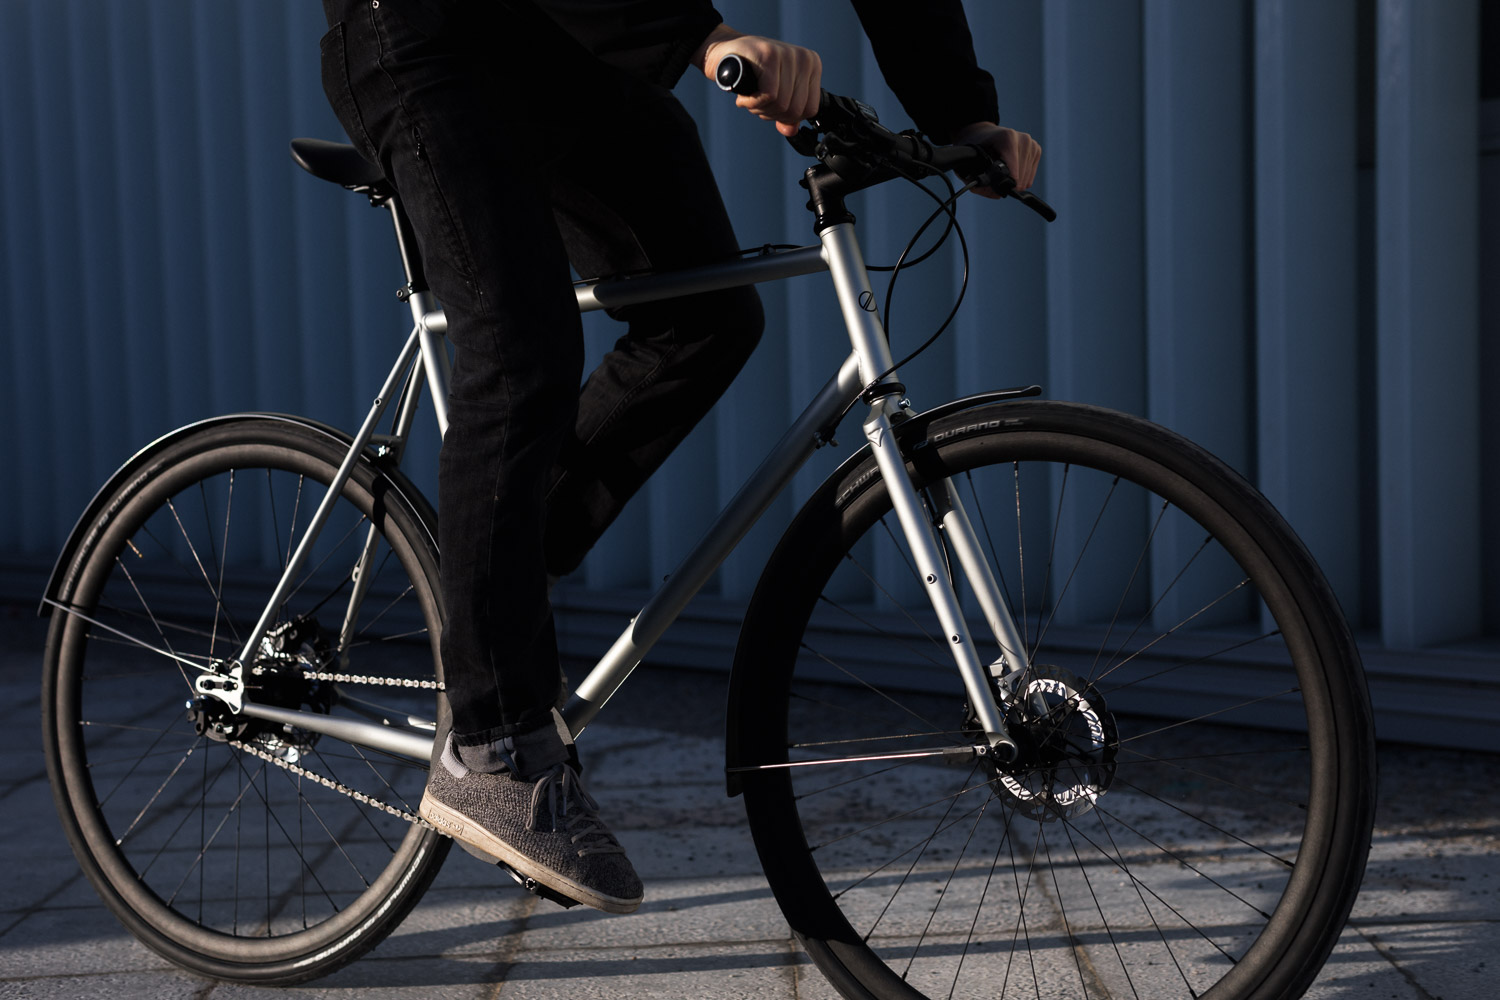 Bicycle ridden by a man wearing a full black outift.It is a silver grey 8bar Mitte Steel with fenders,riser bar and disc brakes.